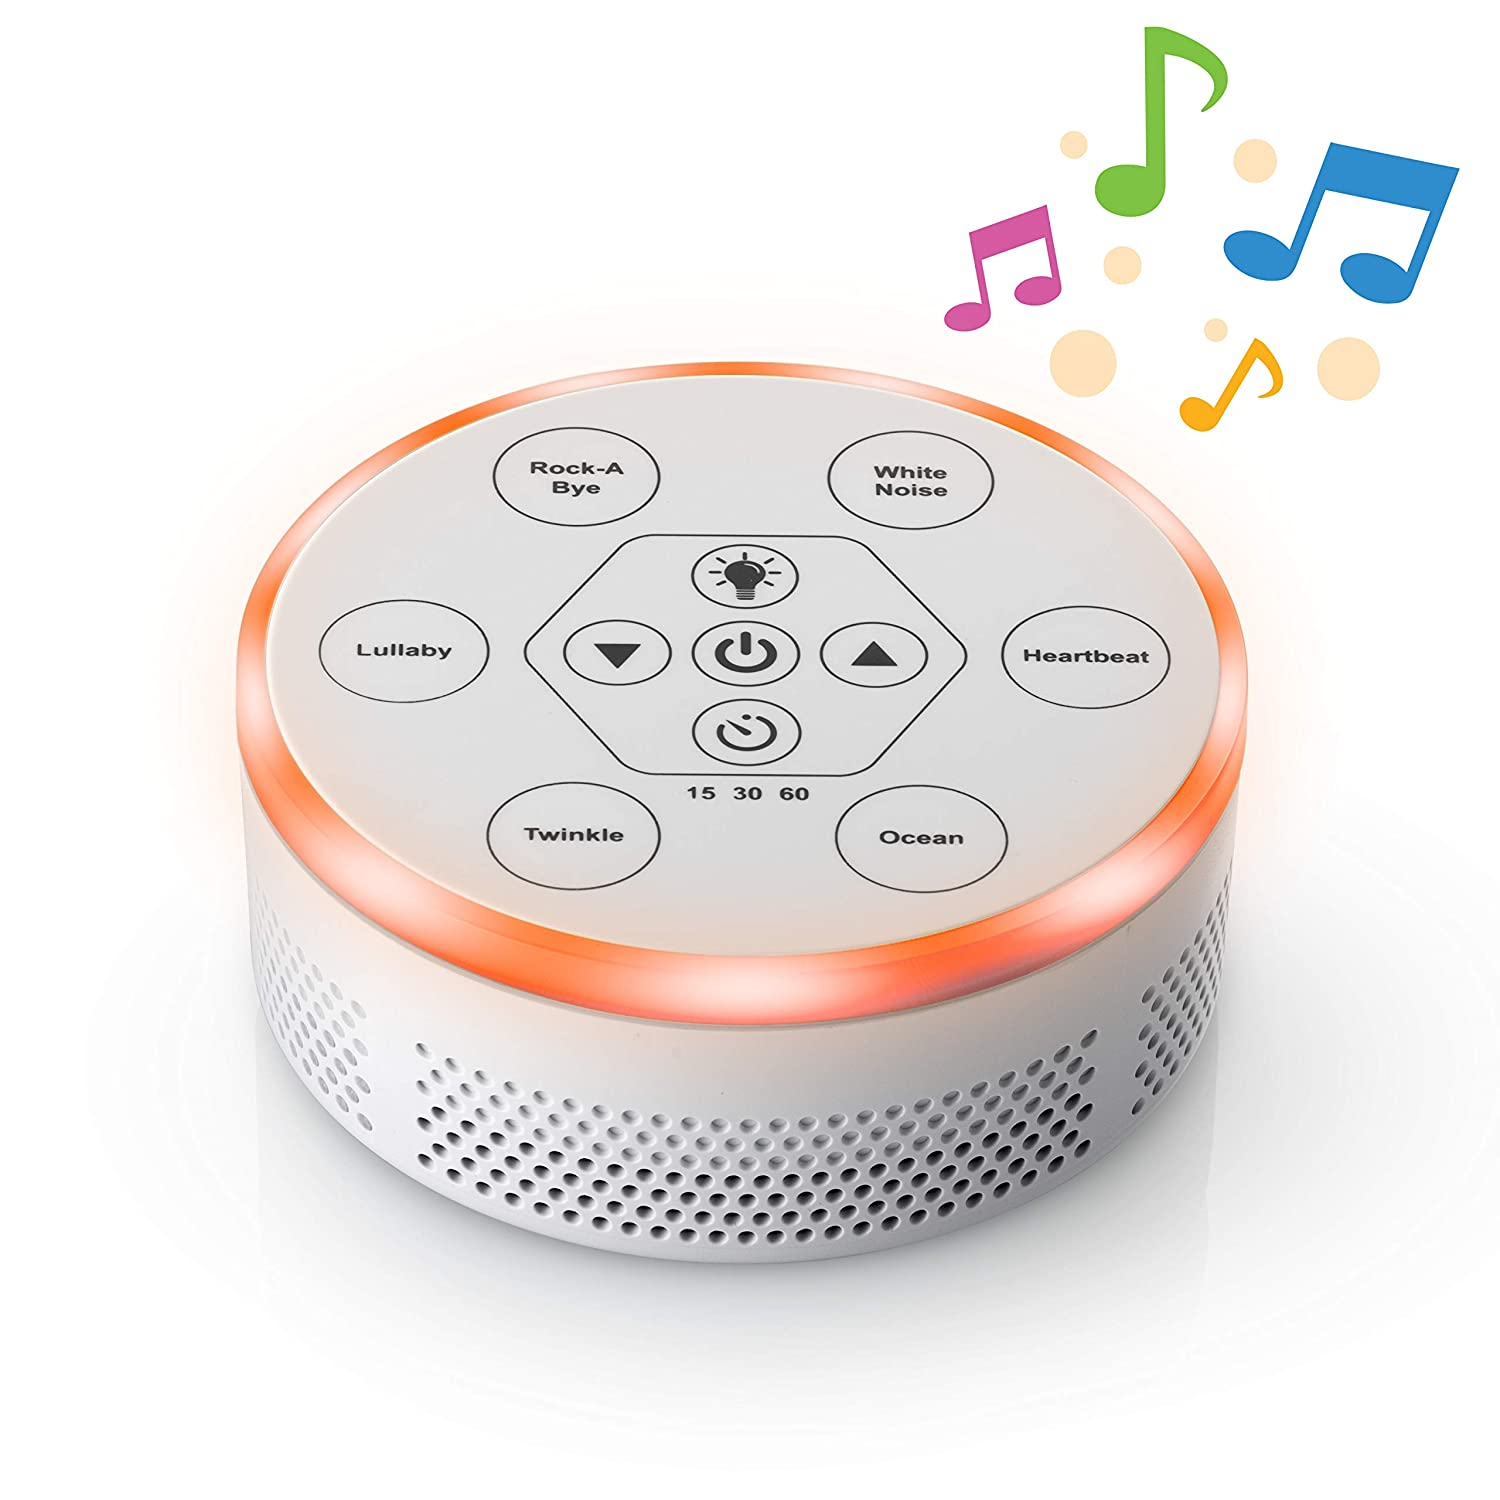 Dream Zone Sound Machine Relaxing Sleep Therapy for Baby, Home, Office Study 6 Unique Music Settings, Timer, USB Charging Ports Flickering Night Light Soothing Ocean, Rain River Sounds